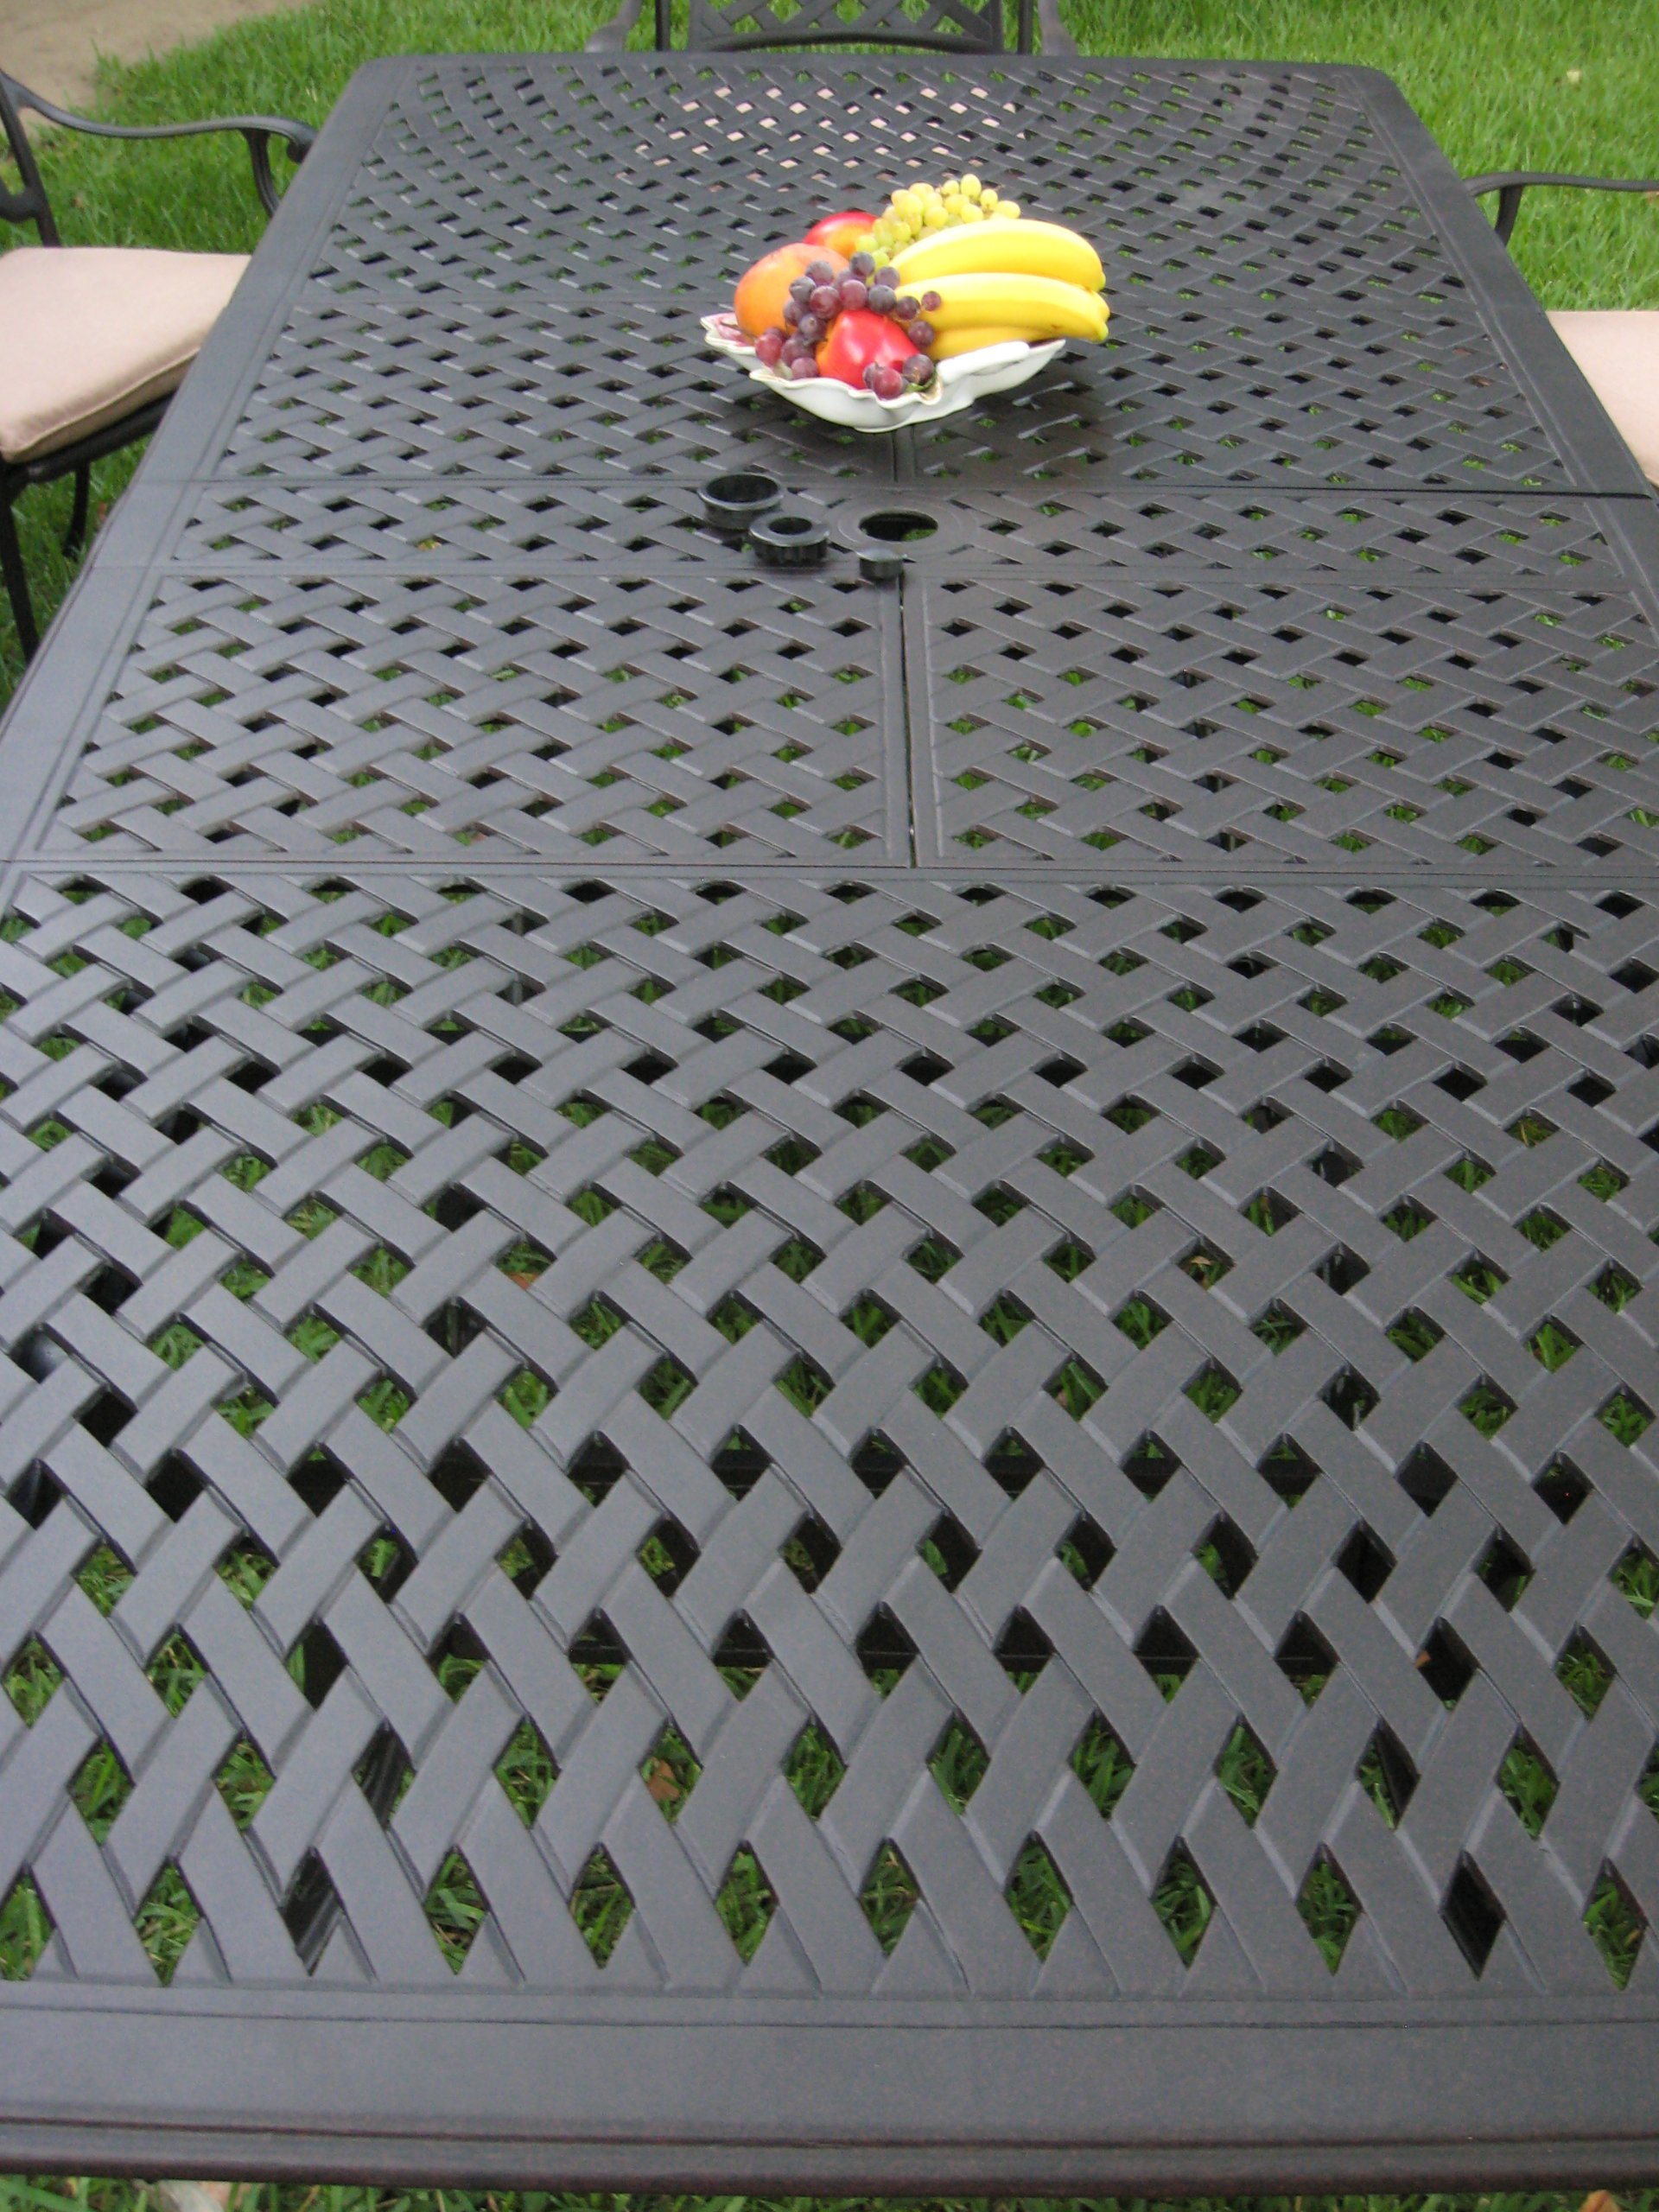 Cast Aluminum Outdoor Patio Furniture 9 Piece Extension Dining Table Set KL09KLSS260112T - CBM patio Kawaii Collection Cast Aluminum Outdoor Patio Furniture 9 Piece Extension Dining Table Set KL09KLSS260112T Kawaii Collections Made of genuine cast aluminum,Comfortable seating Durable and quality. Assembly required for Table legs only. Color: Desert Brown Slate Finish. Includes: 8 Armchairs and with free Cushions 1 table. - patio-furniture, dining-sets-patio-funiture, patio - 91eZ6L4bcbL -